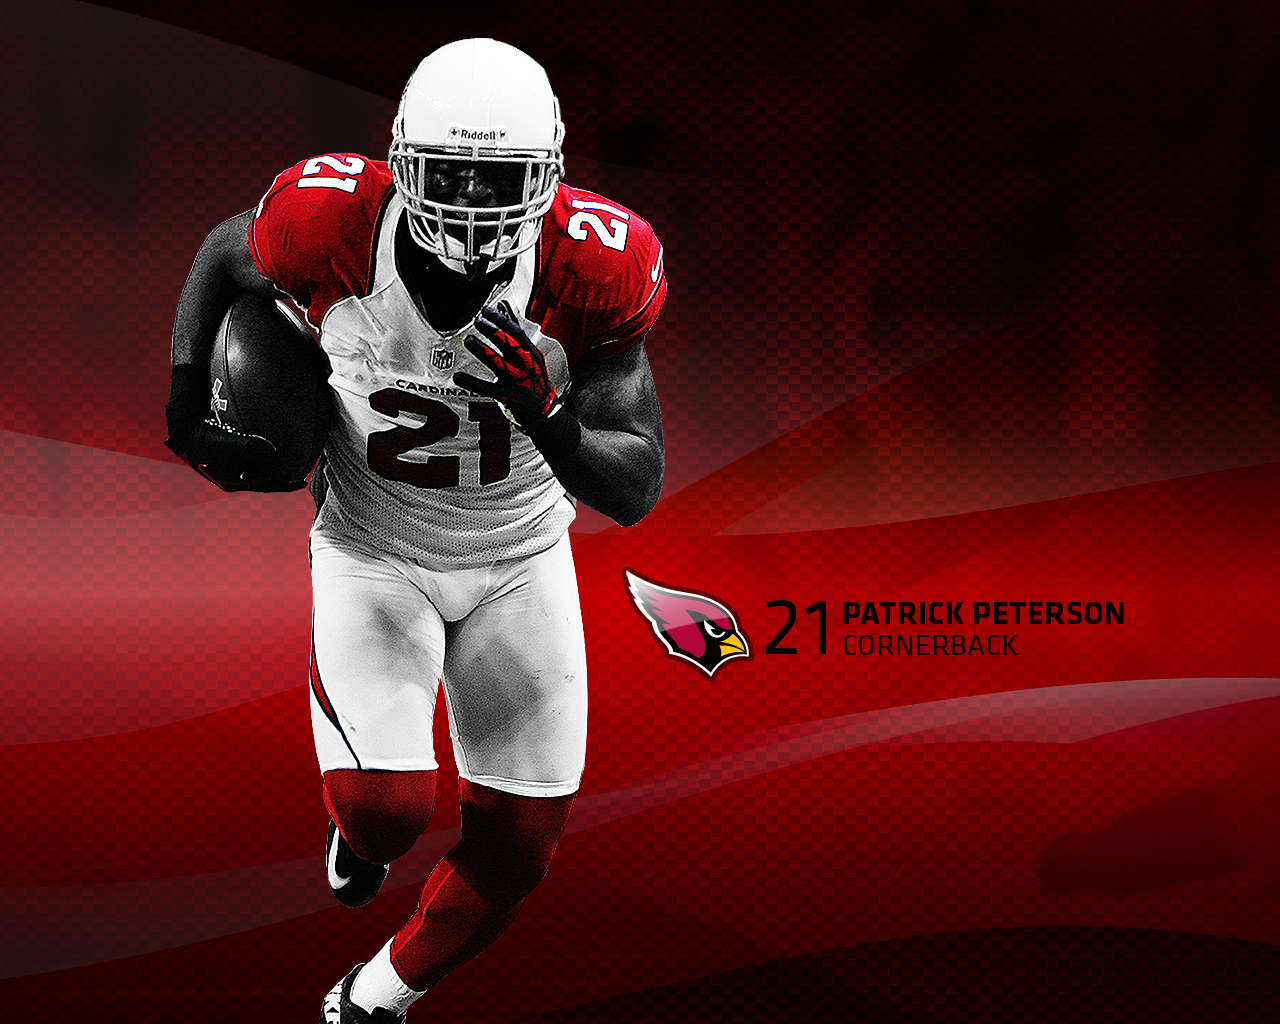 Patrick Peterson Cardinals Wallpaper in HD   iPhone2Lovely 1280x1024